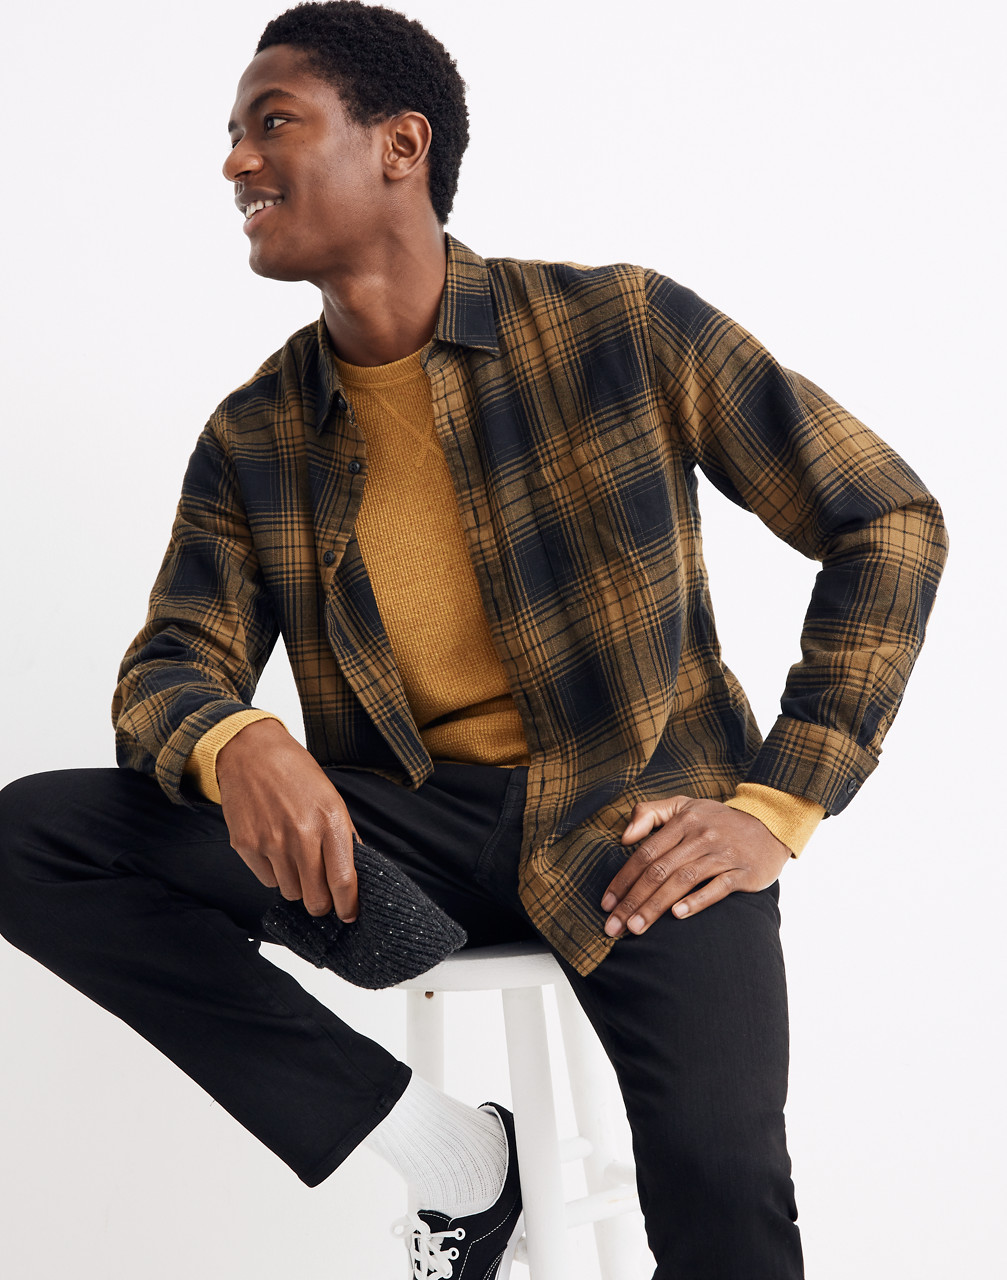 80s Men's Clothing | Shirts, Jeans, Jackets for Guys Brushed Twill Shirt in Braybrook Plaid $88.00 AT vintagedancer.com